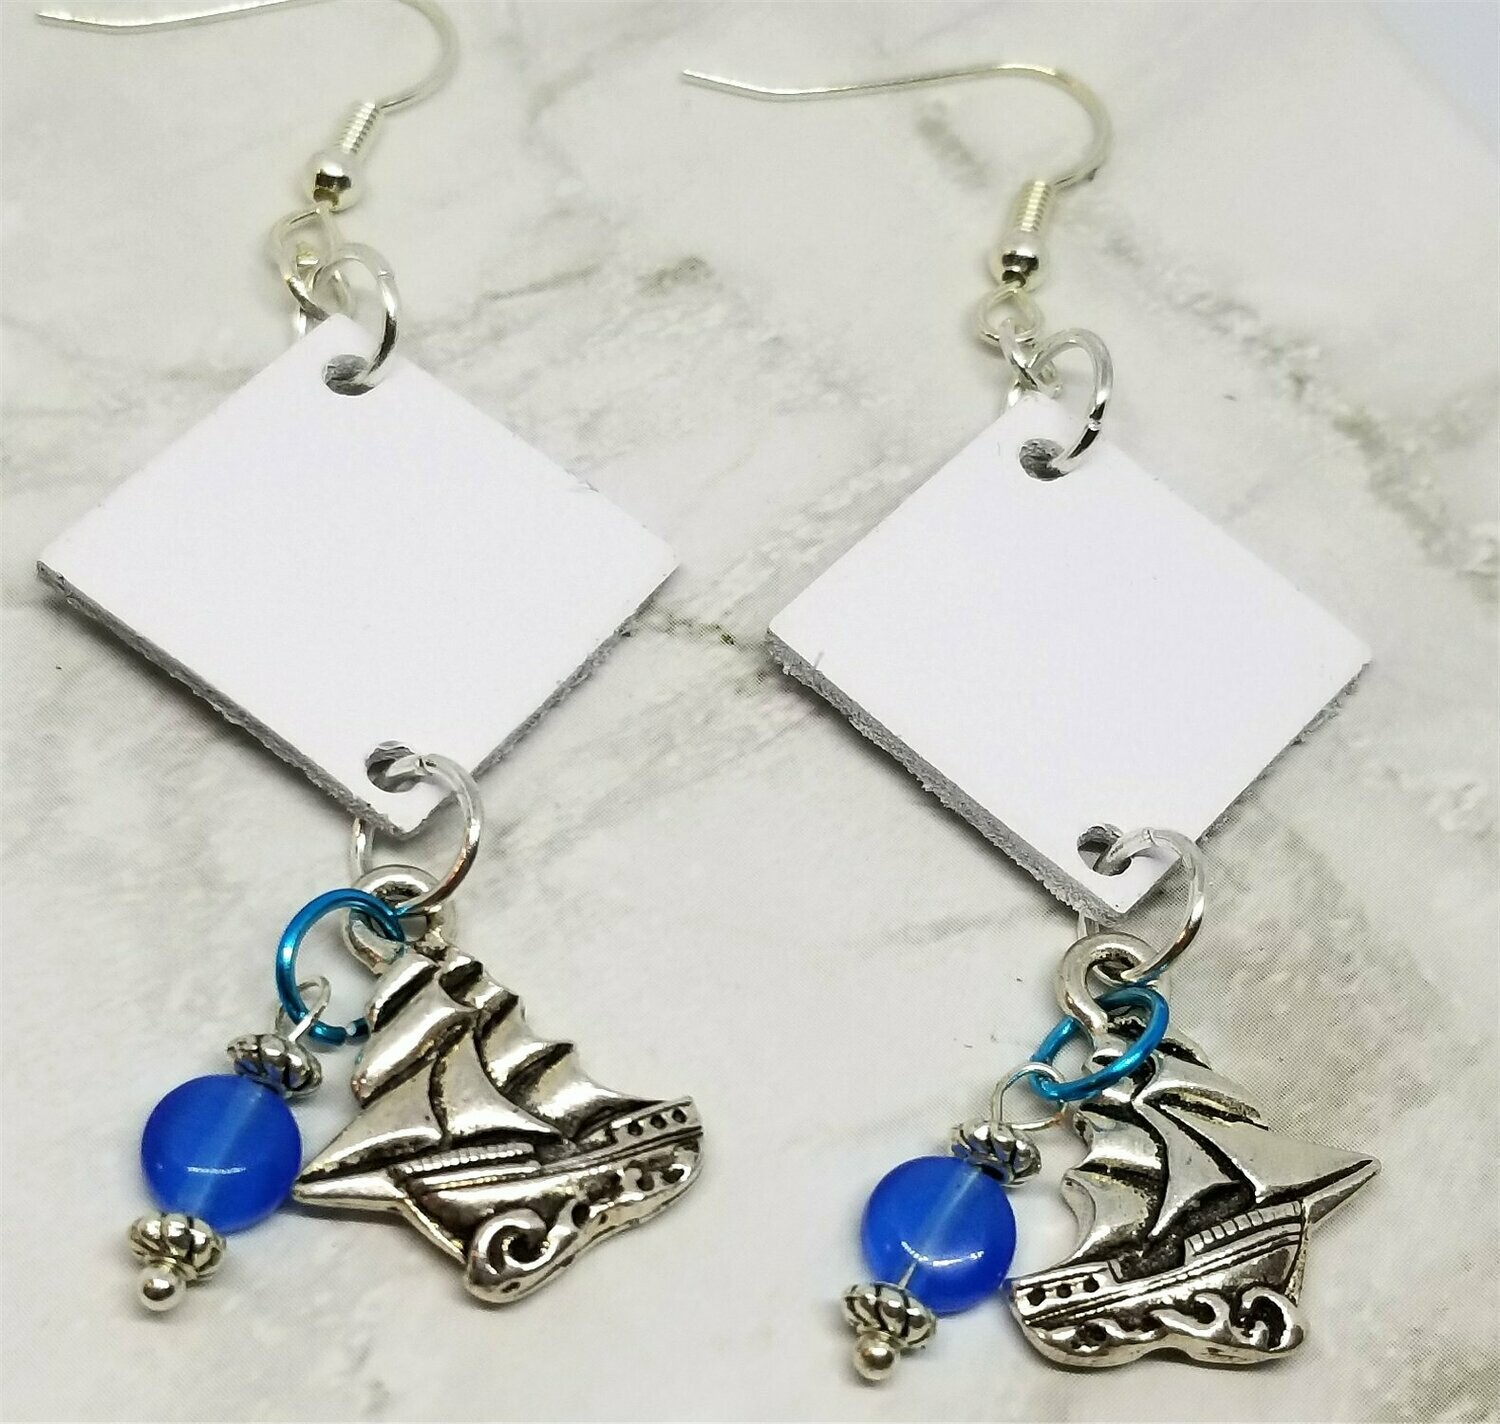 White Diamond Shaped Leather Earrings with Sailboat Charms and Glass Beads